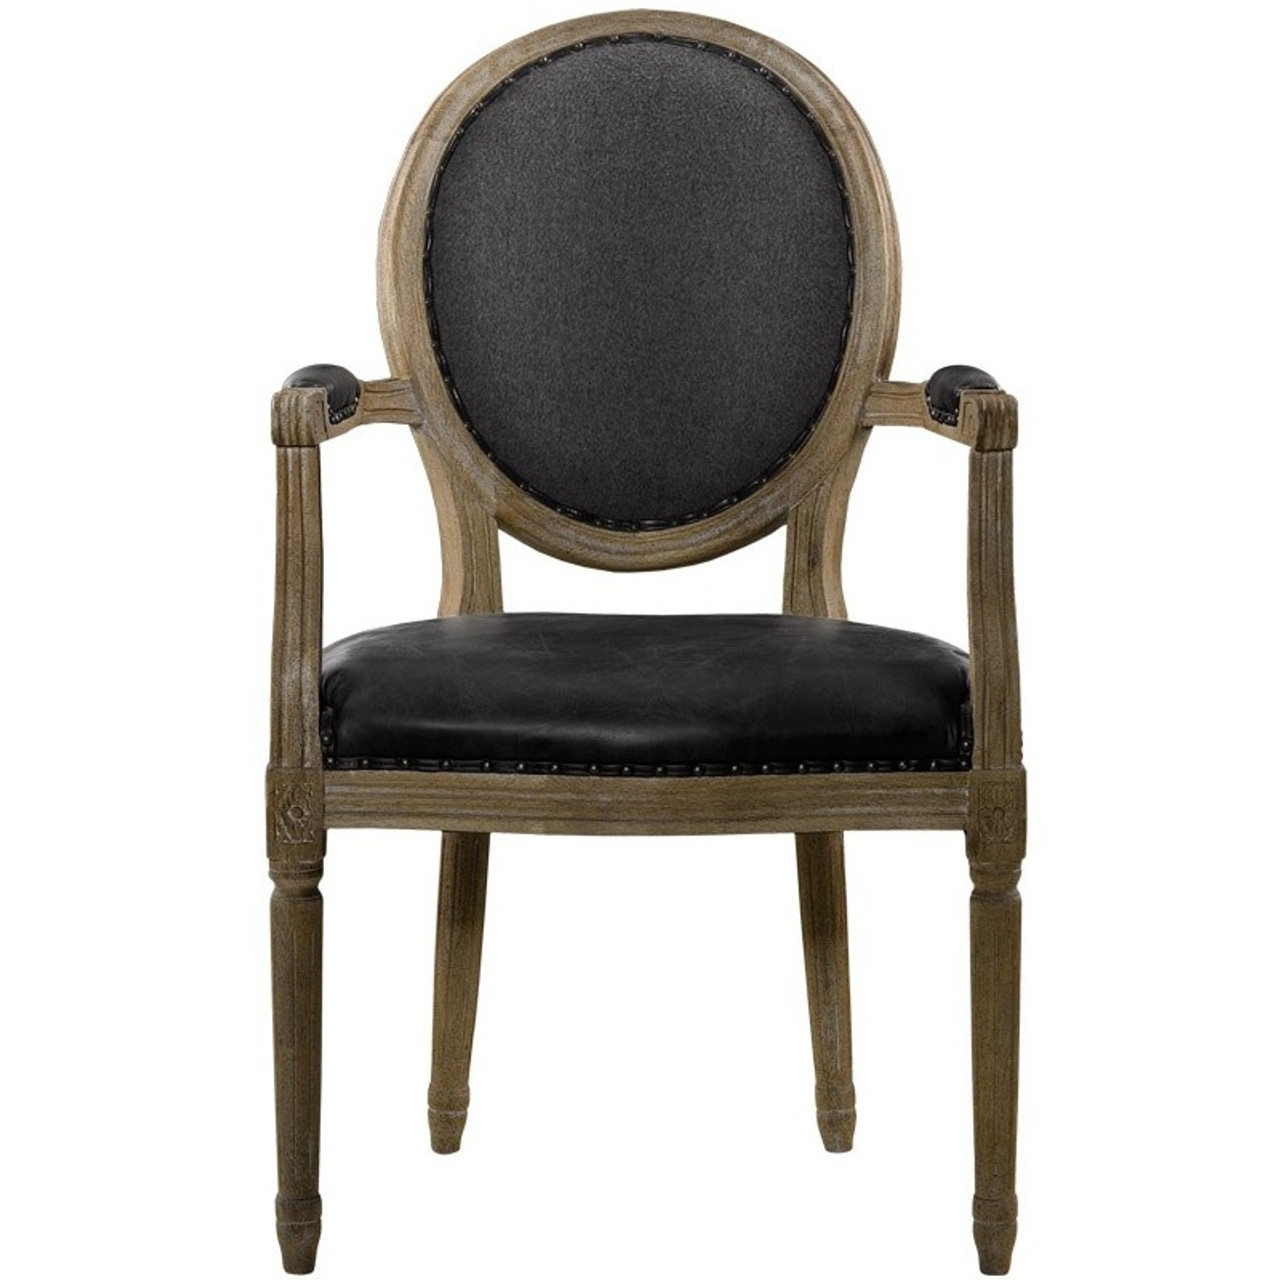 Louis Vintage Black Leather Round Dining ArmChair. FRENCH VINTAGE LOUIS  SLATE ROUND ARM CHAIR